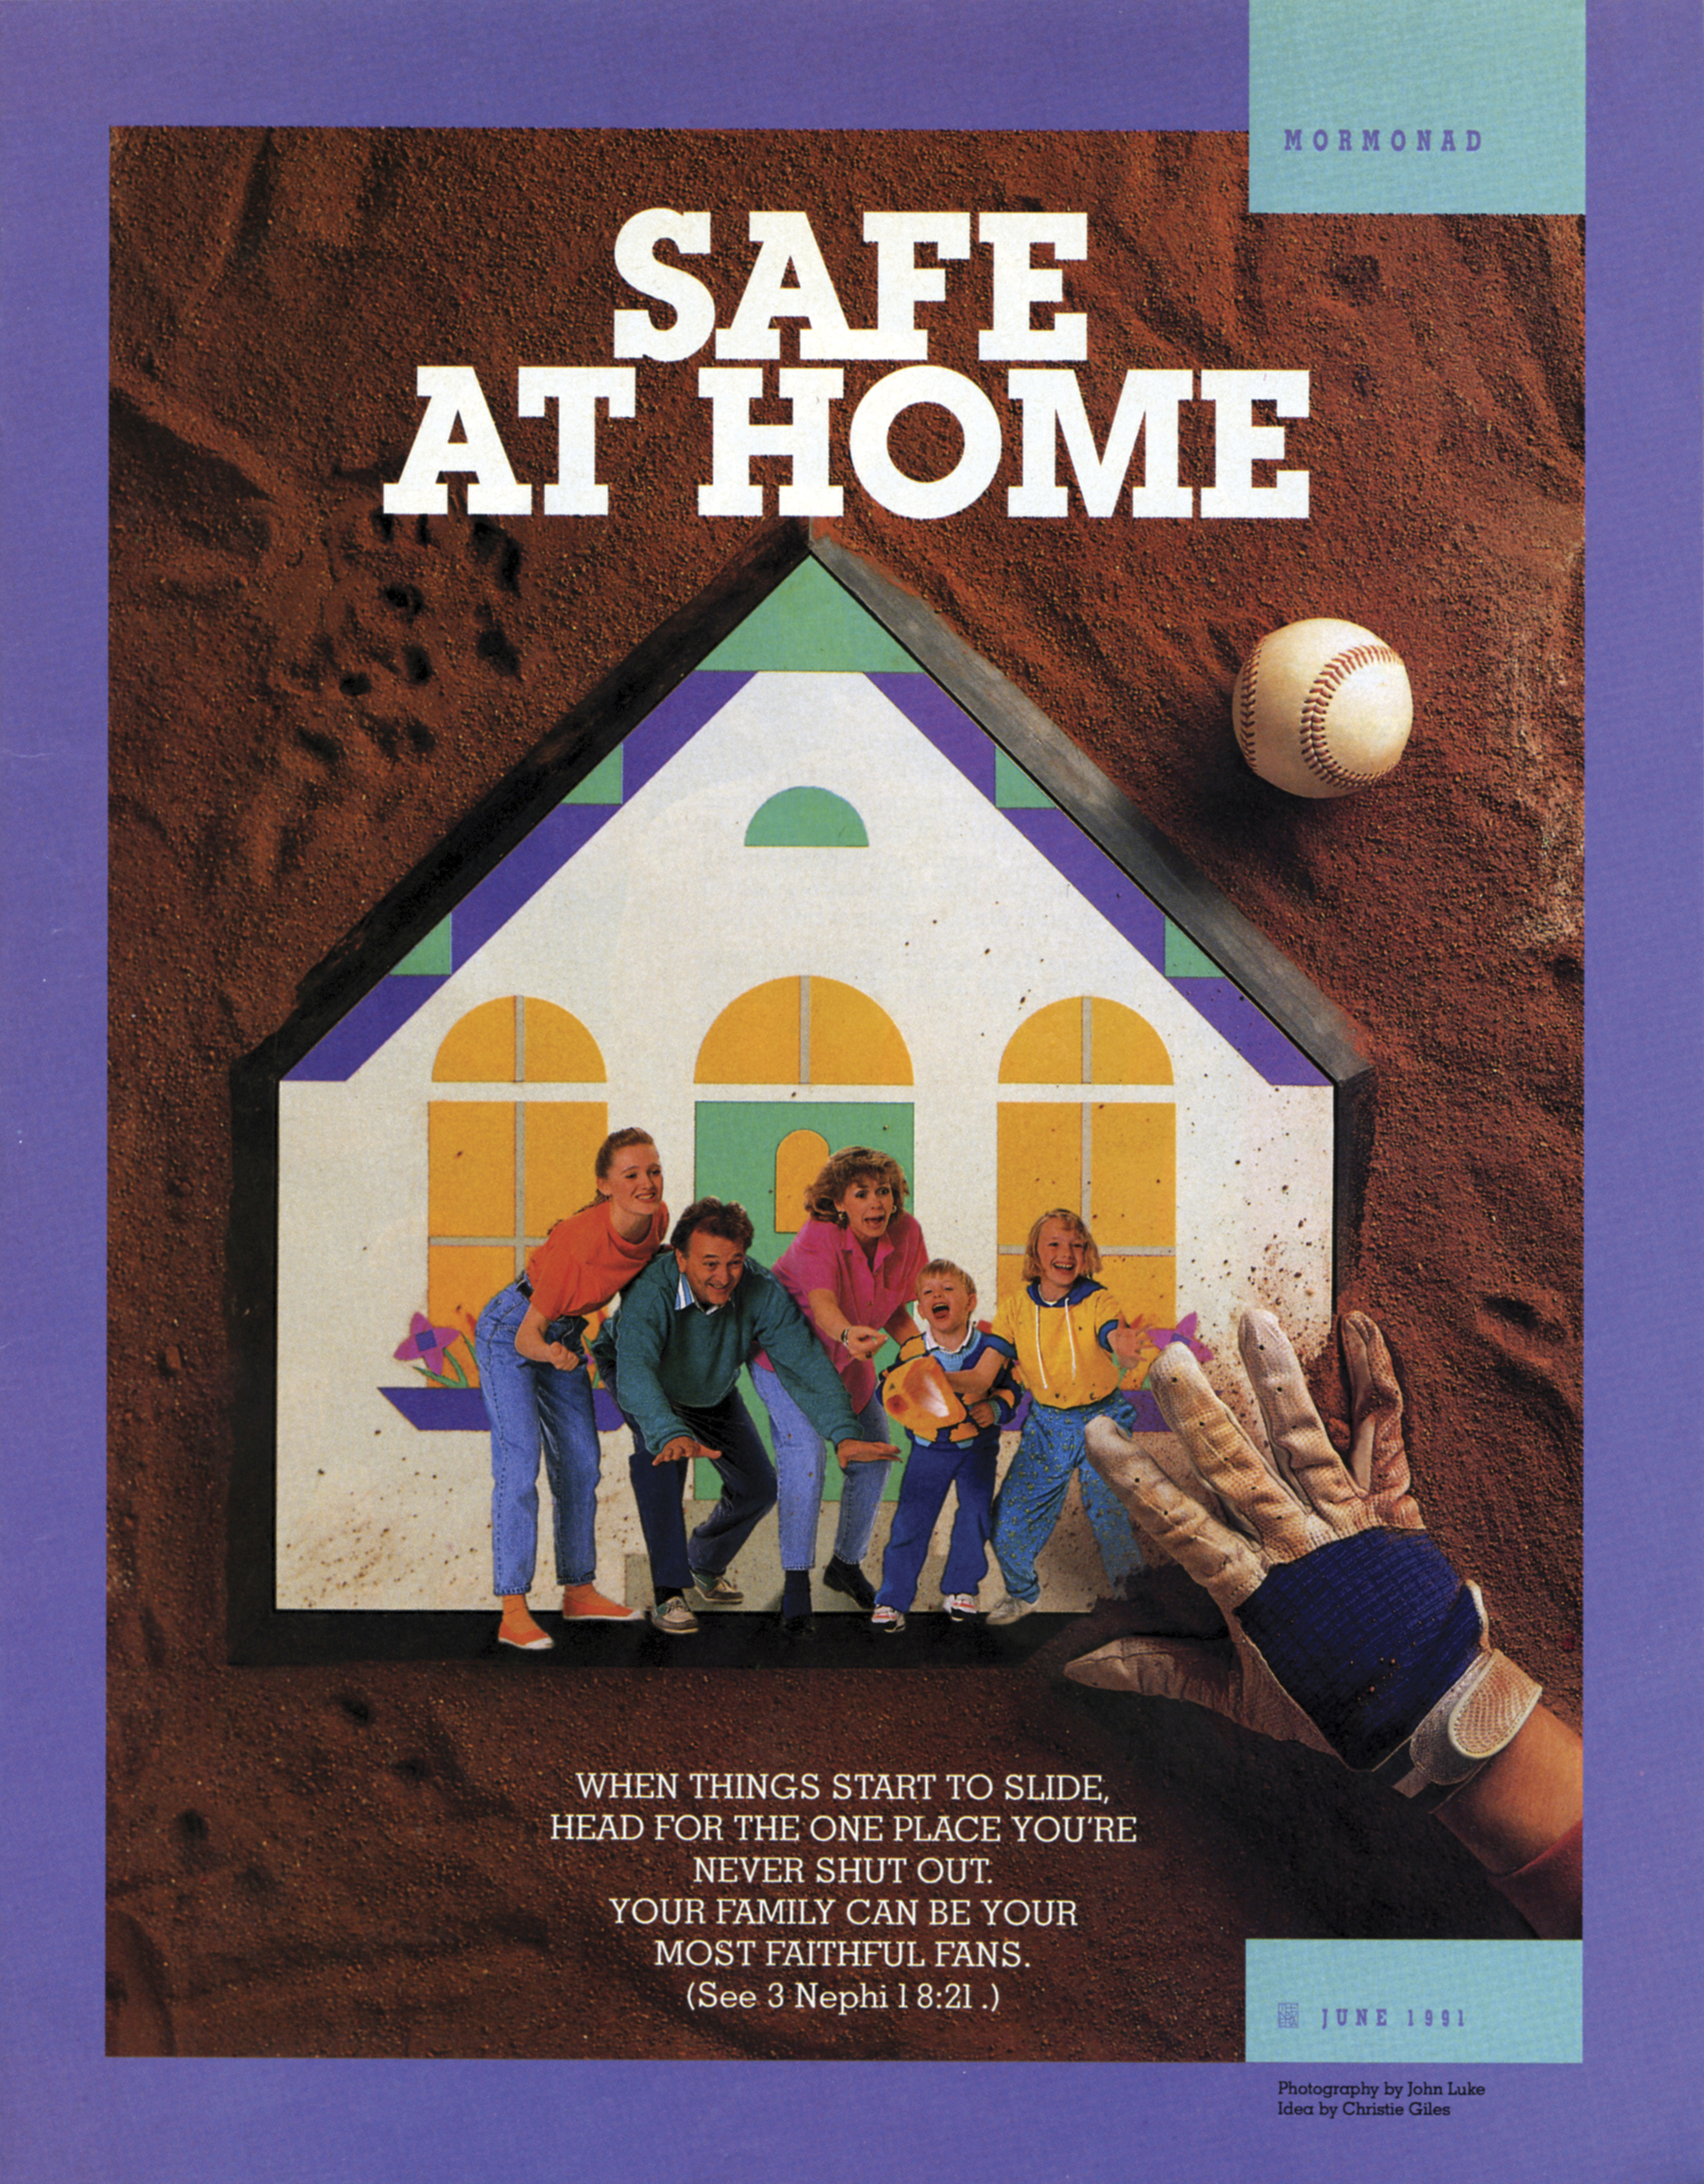 Safe at Home. When things start to slide, head for the one place you're never shut out. Your family can be your most faithful fans. (See 3 Nephi 18:21.) June 1991 © undefined ipCode 1.